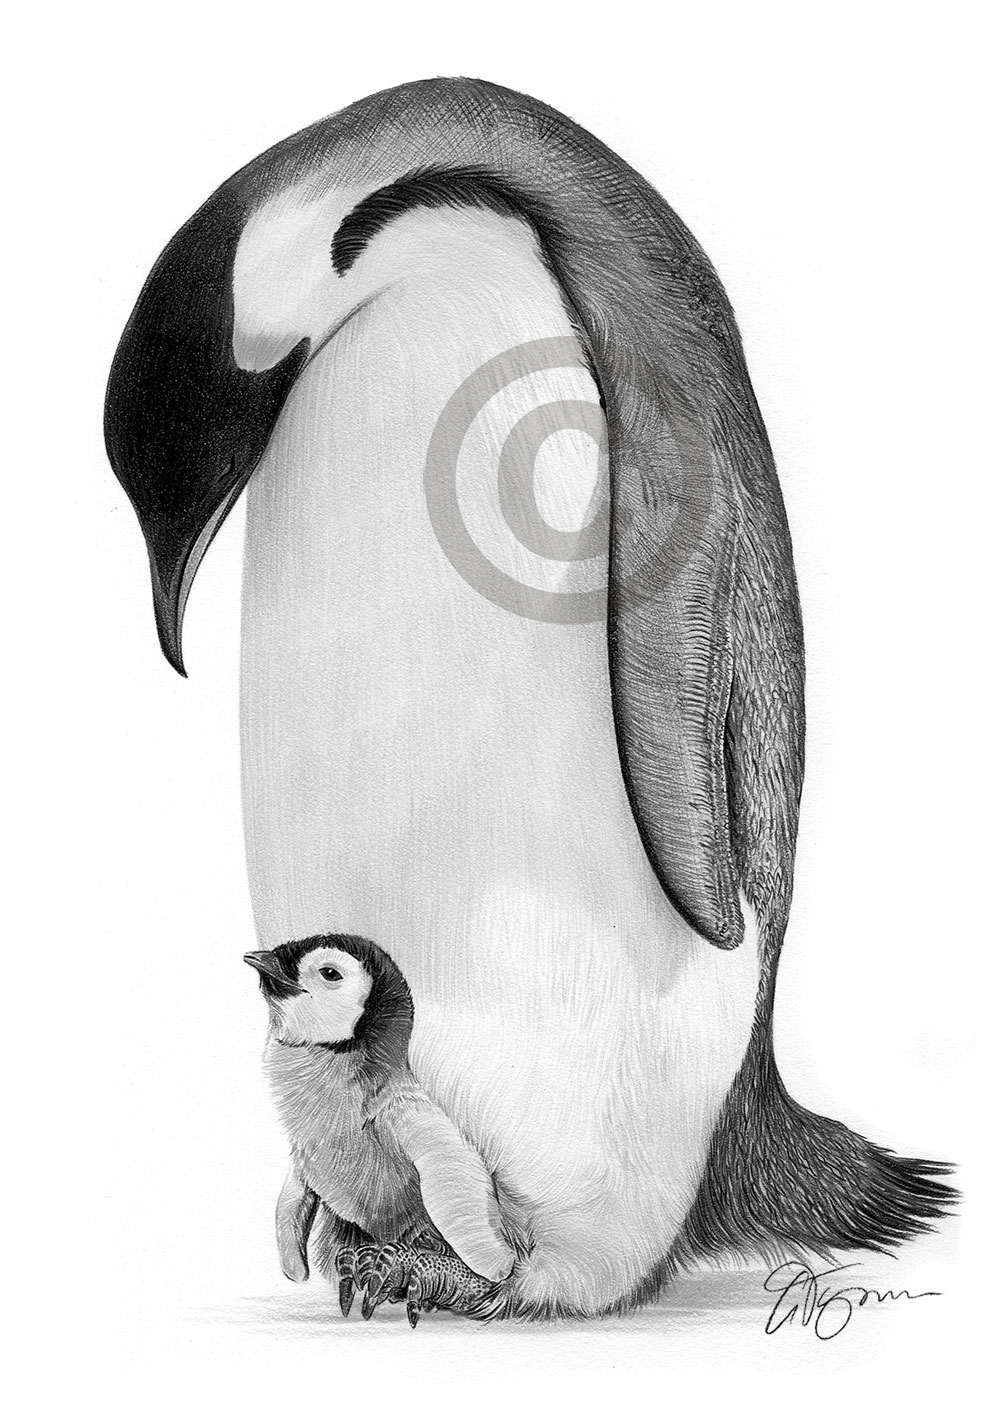 Pencil drawing of an emperor penguin by artist Gary Tymon